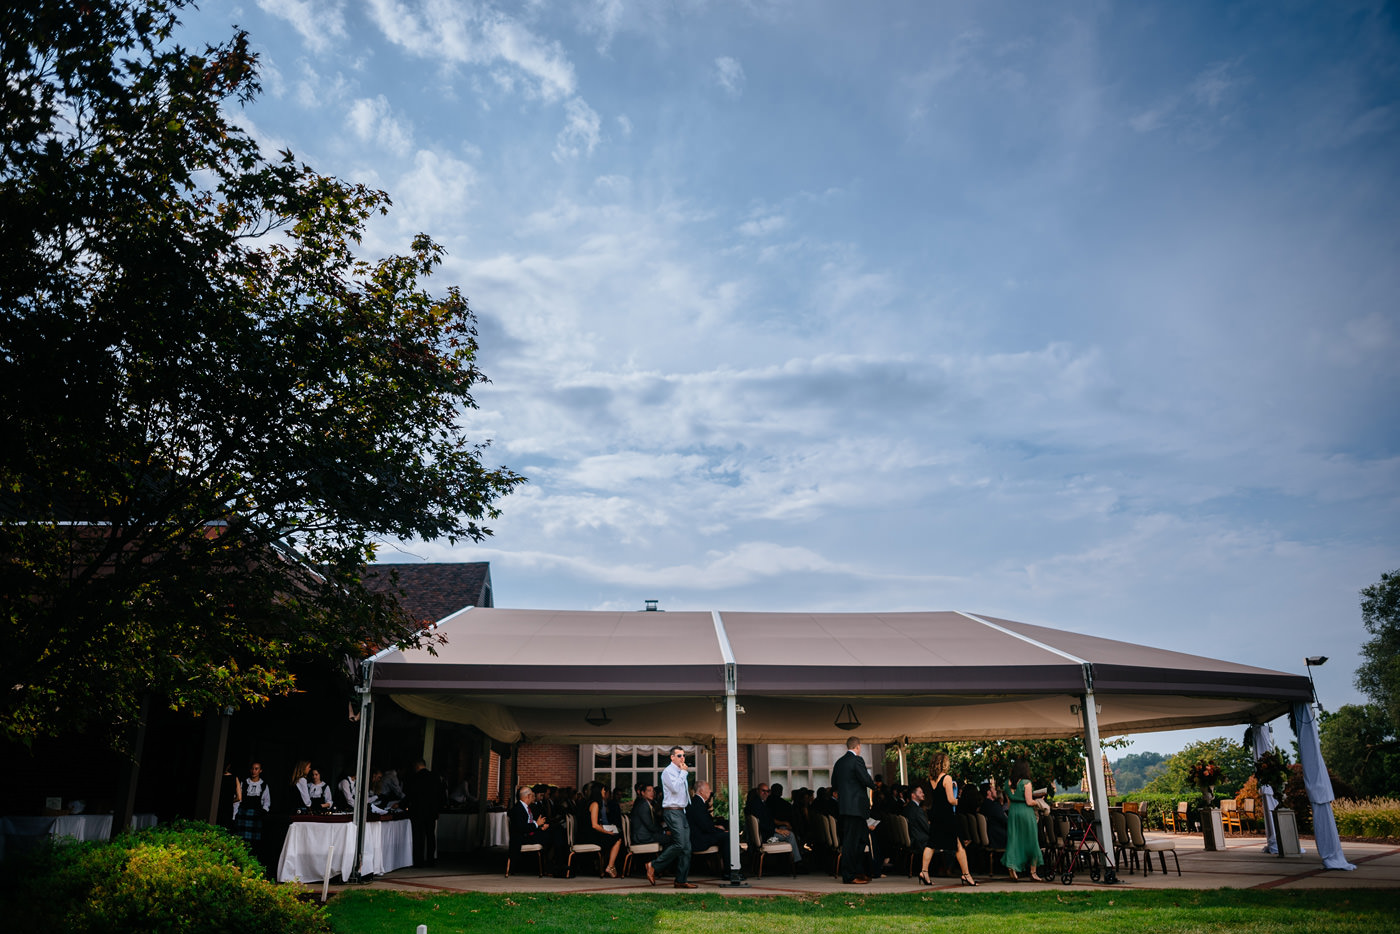 st clair country club wedding ceremony under tent